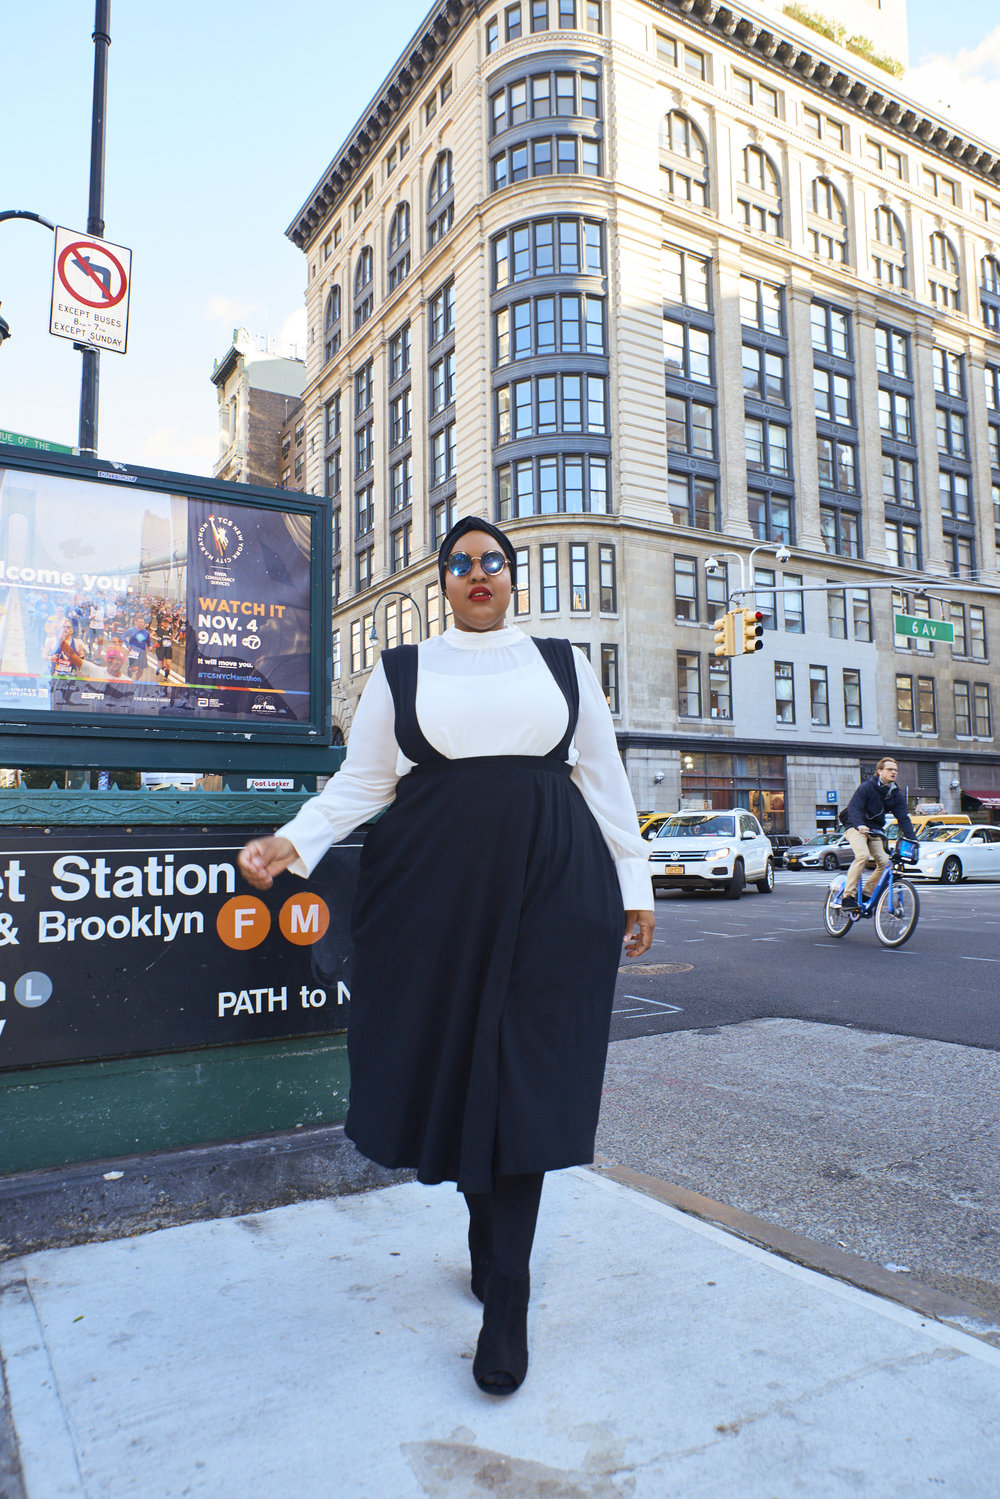 Leah-Vernon-Plus-Size-Muslim-Black-Model-London-Detroit-Body-Positive-Style-Blogger-2.jpg